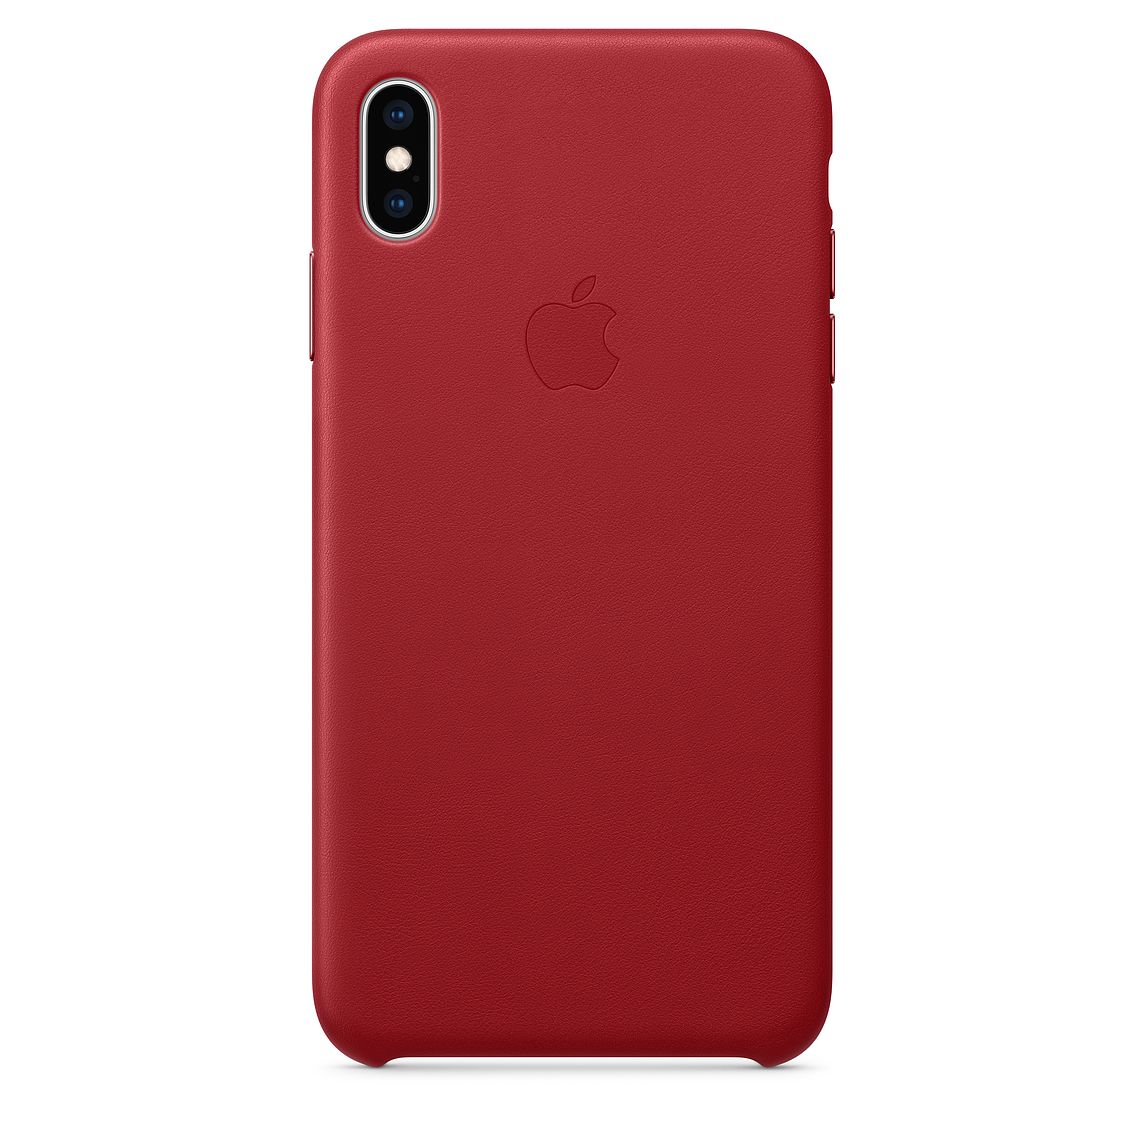 Leather Case iPhone XS/ XS Max (PRODUCT)RED OEM